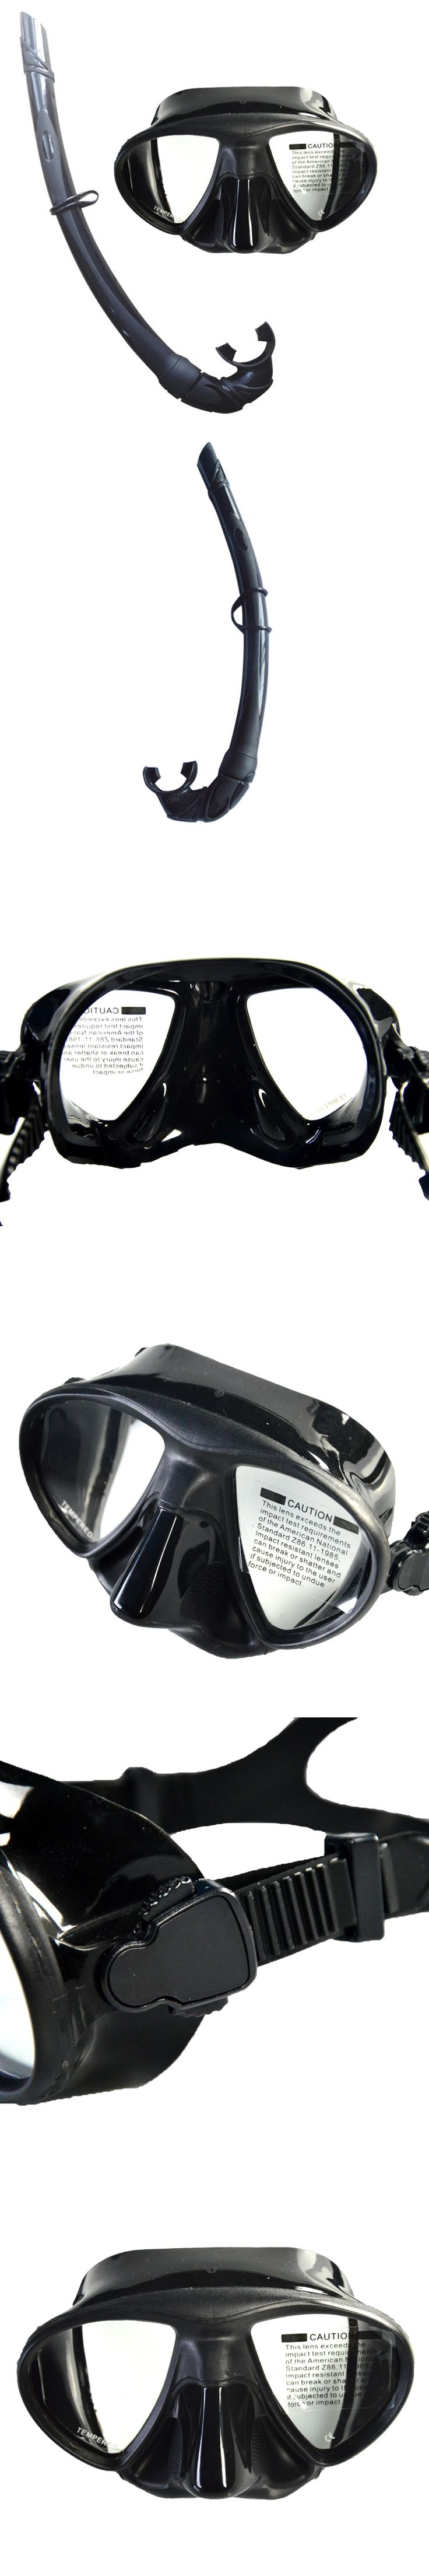 Hot sale Diving Mask  with Silicone Snorkel Set  For Spearfishing MS-85519